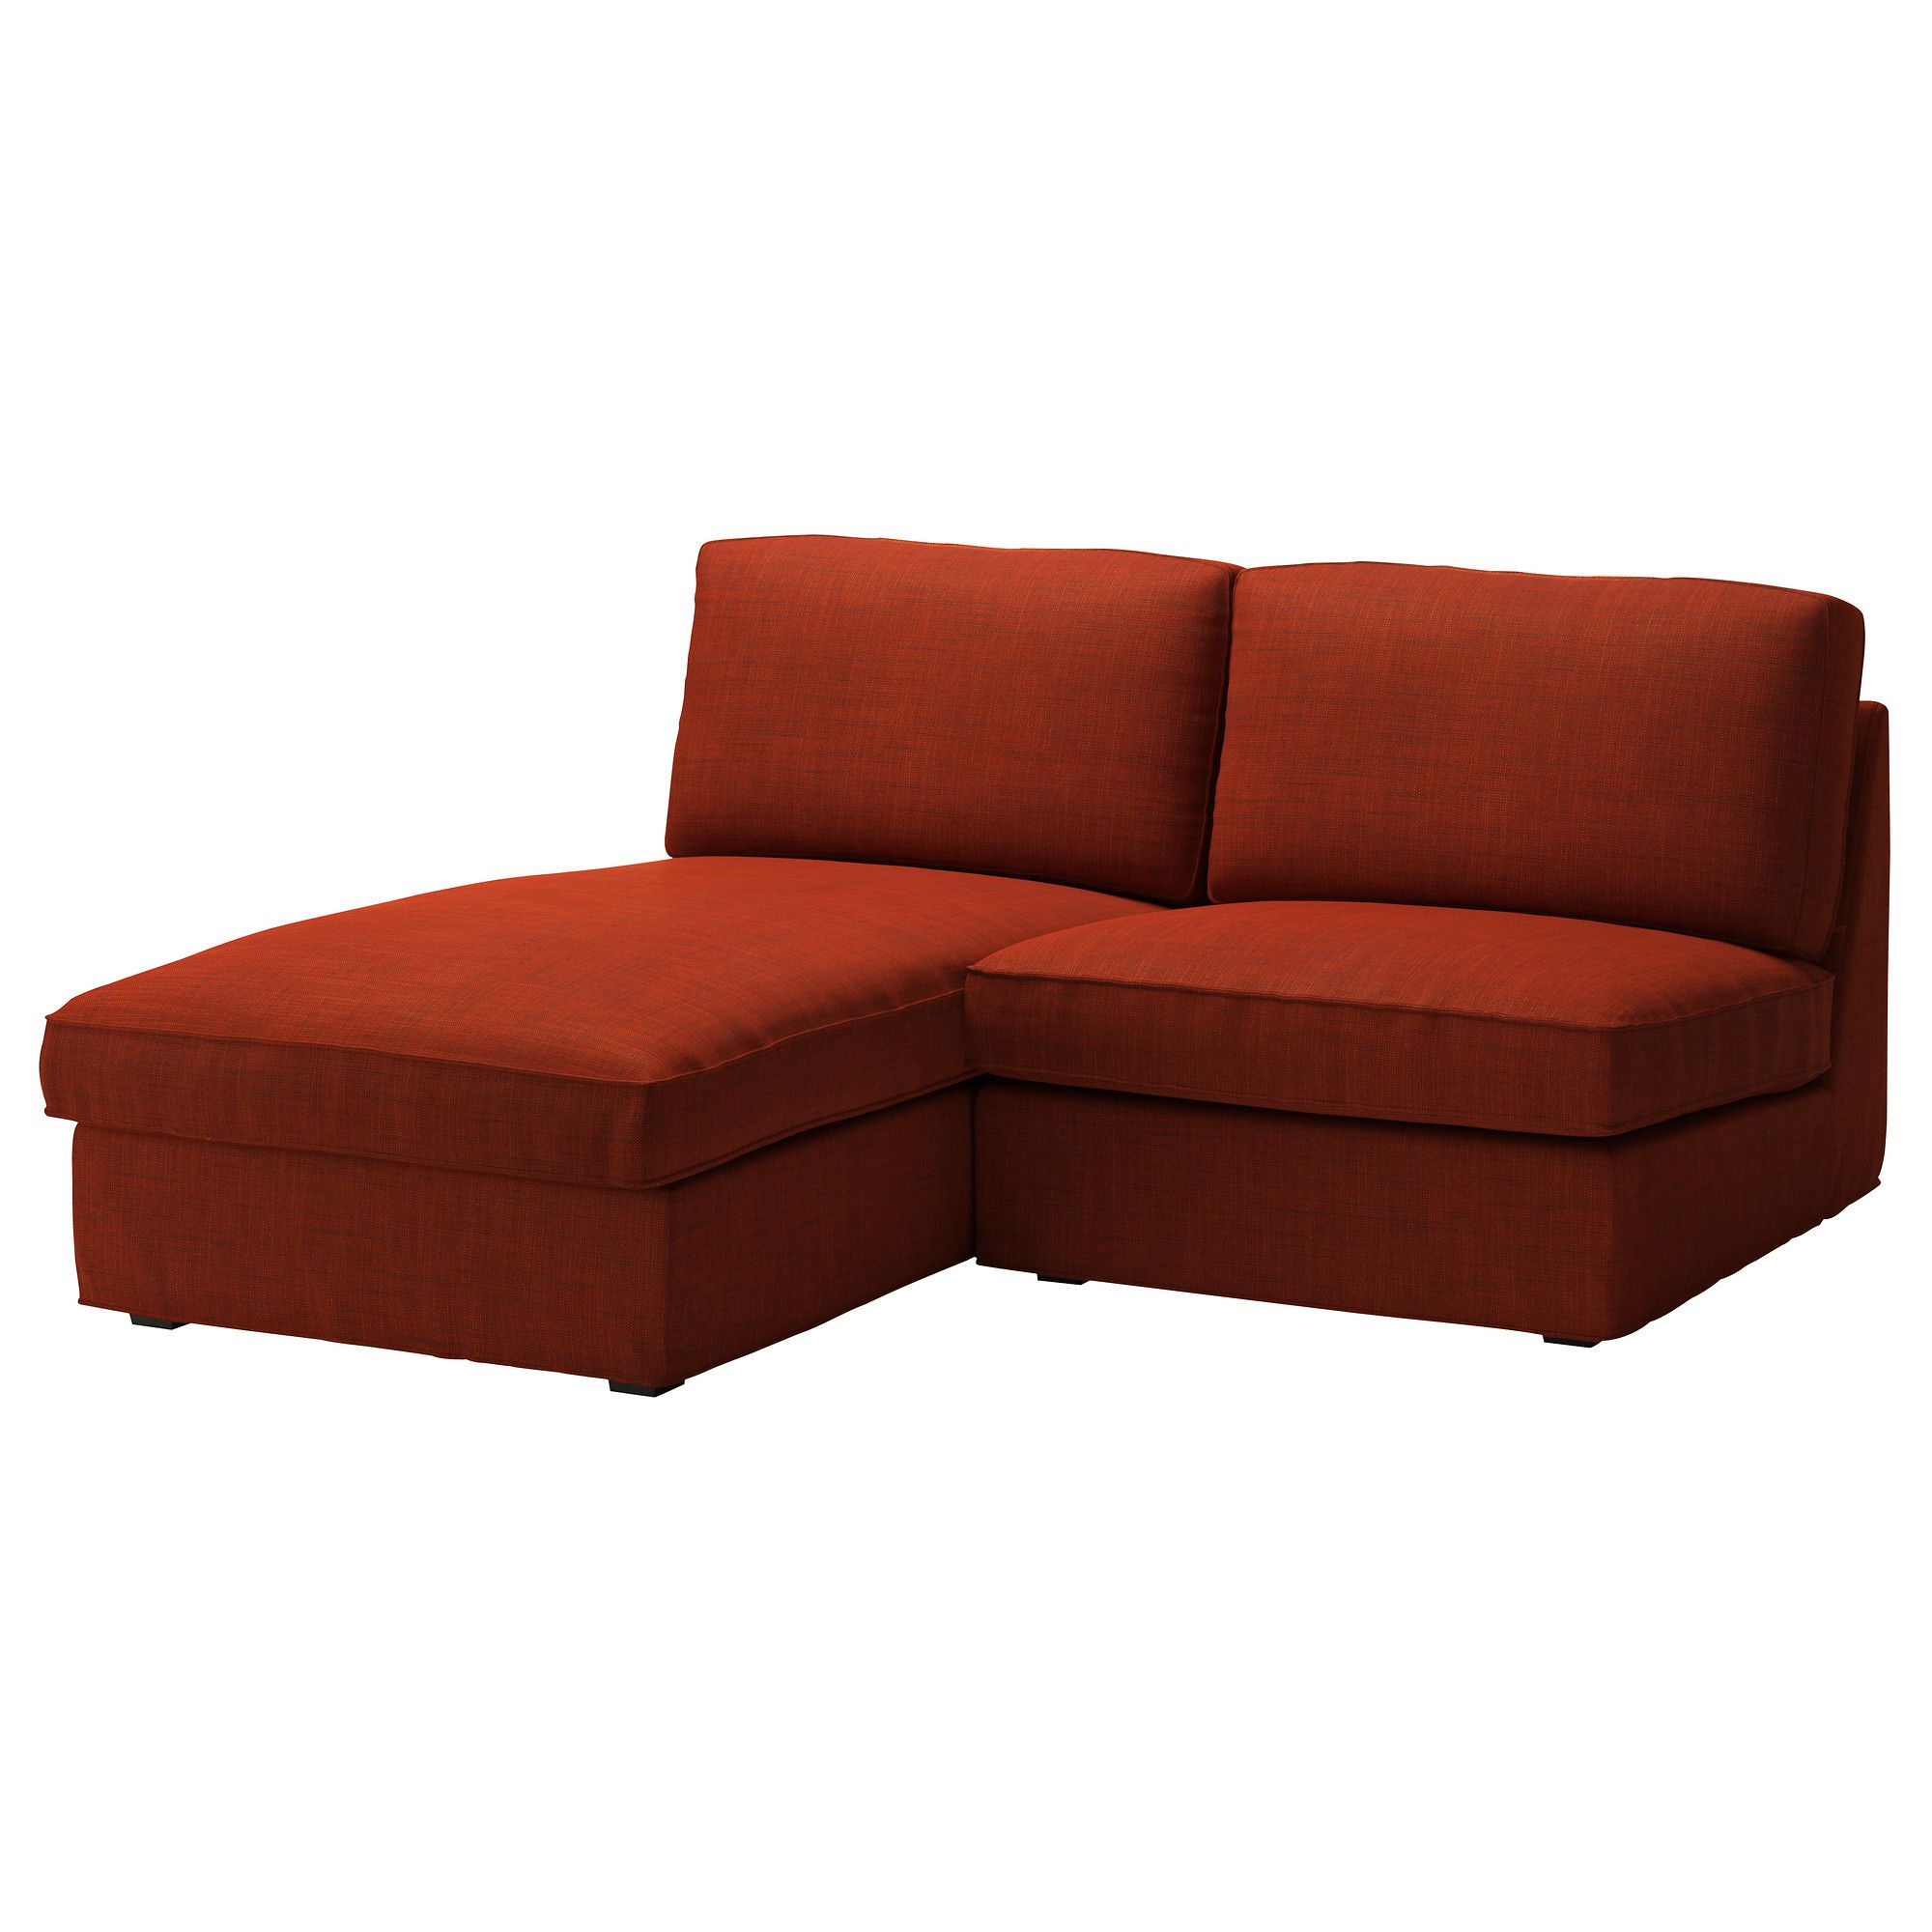 KIVIK One Seat Section With Chaise Longue